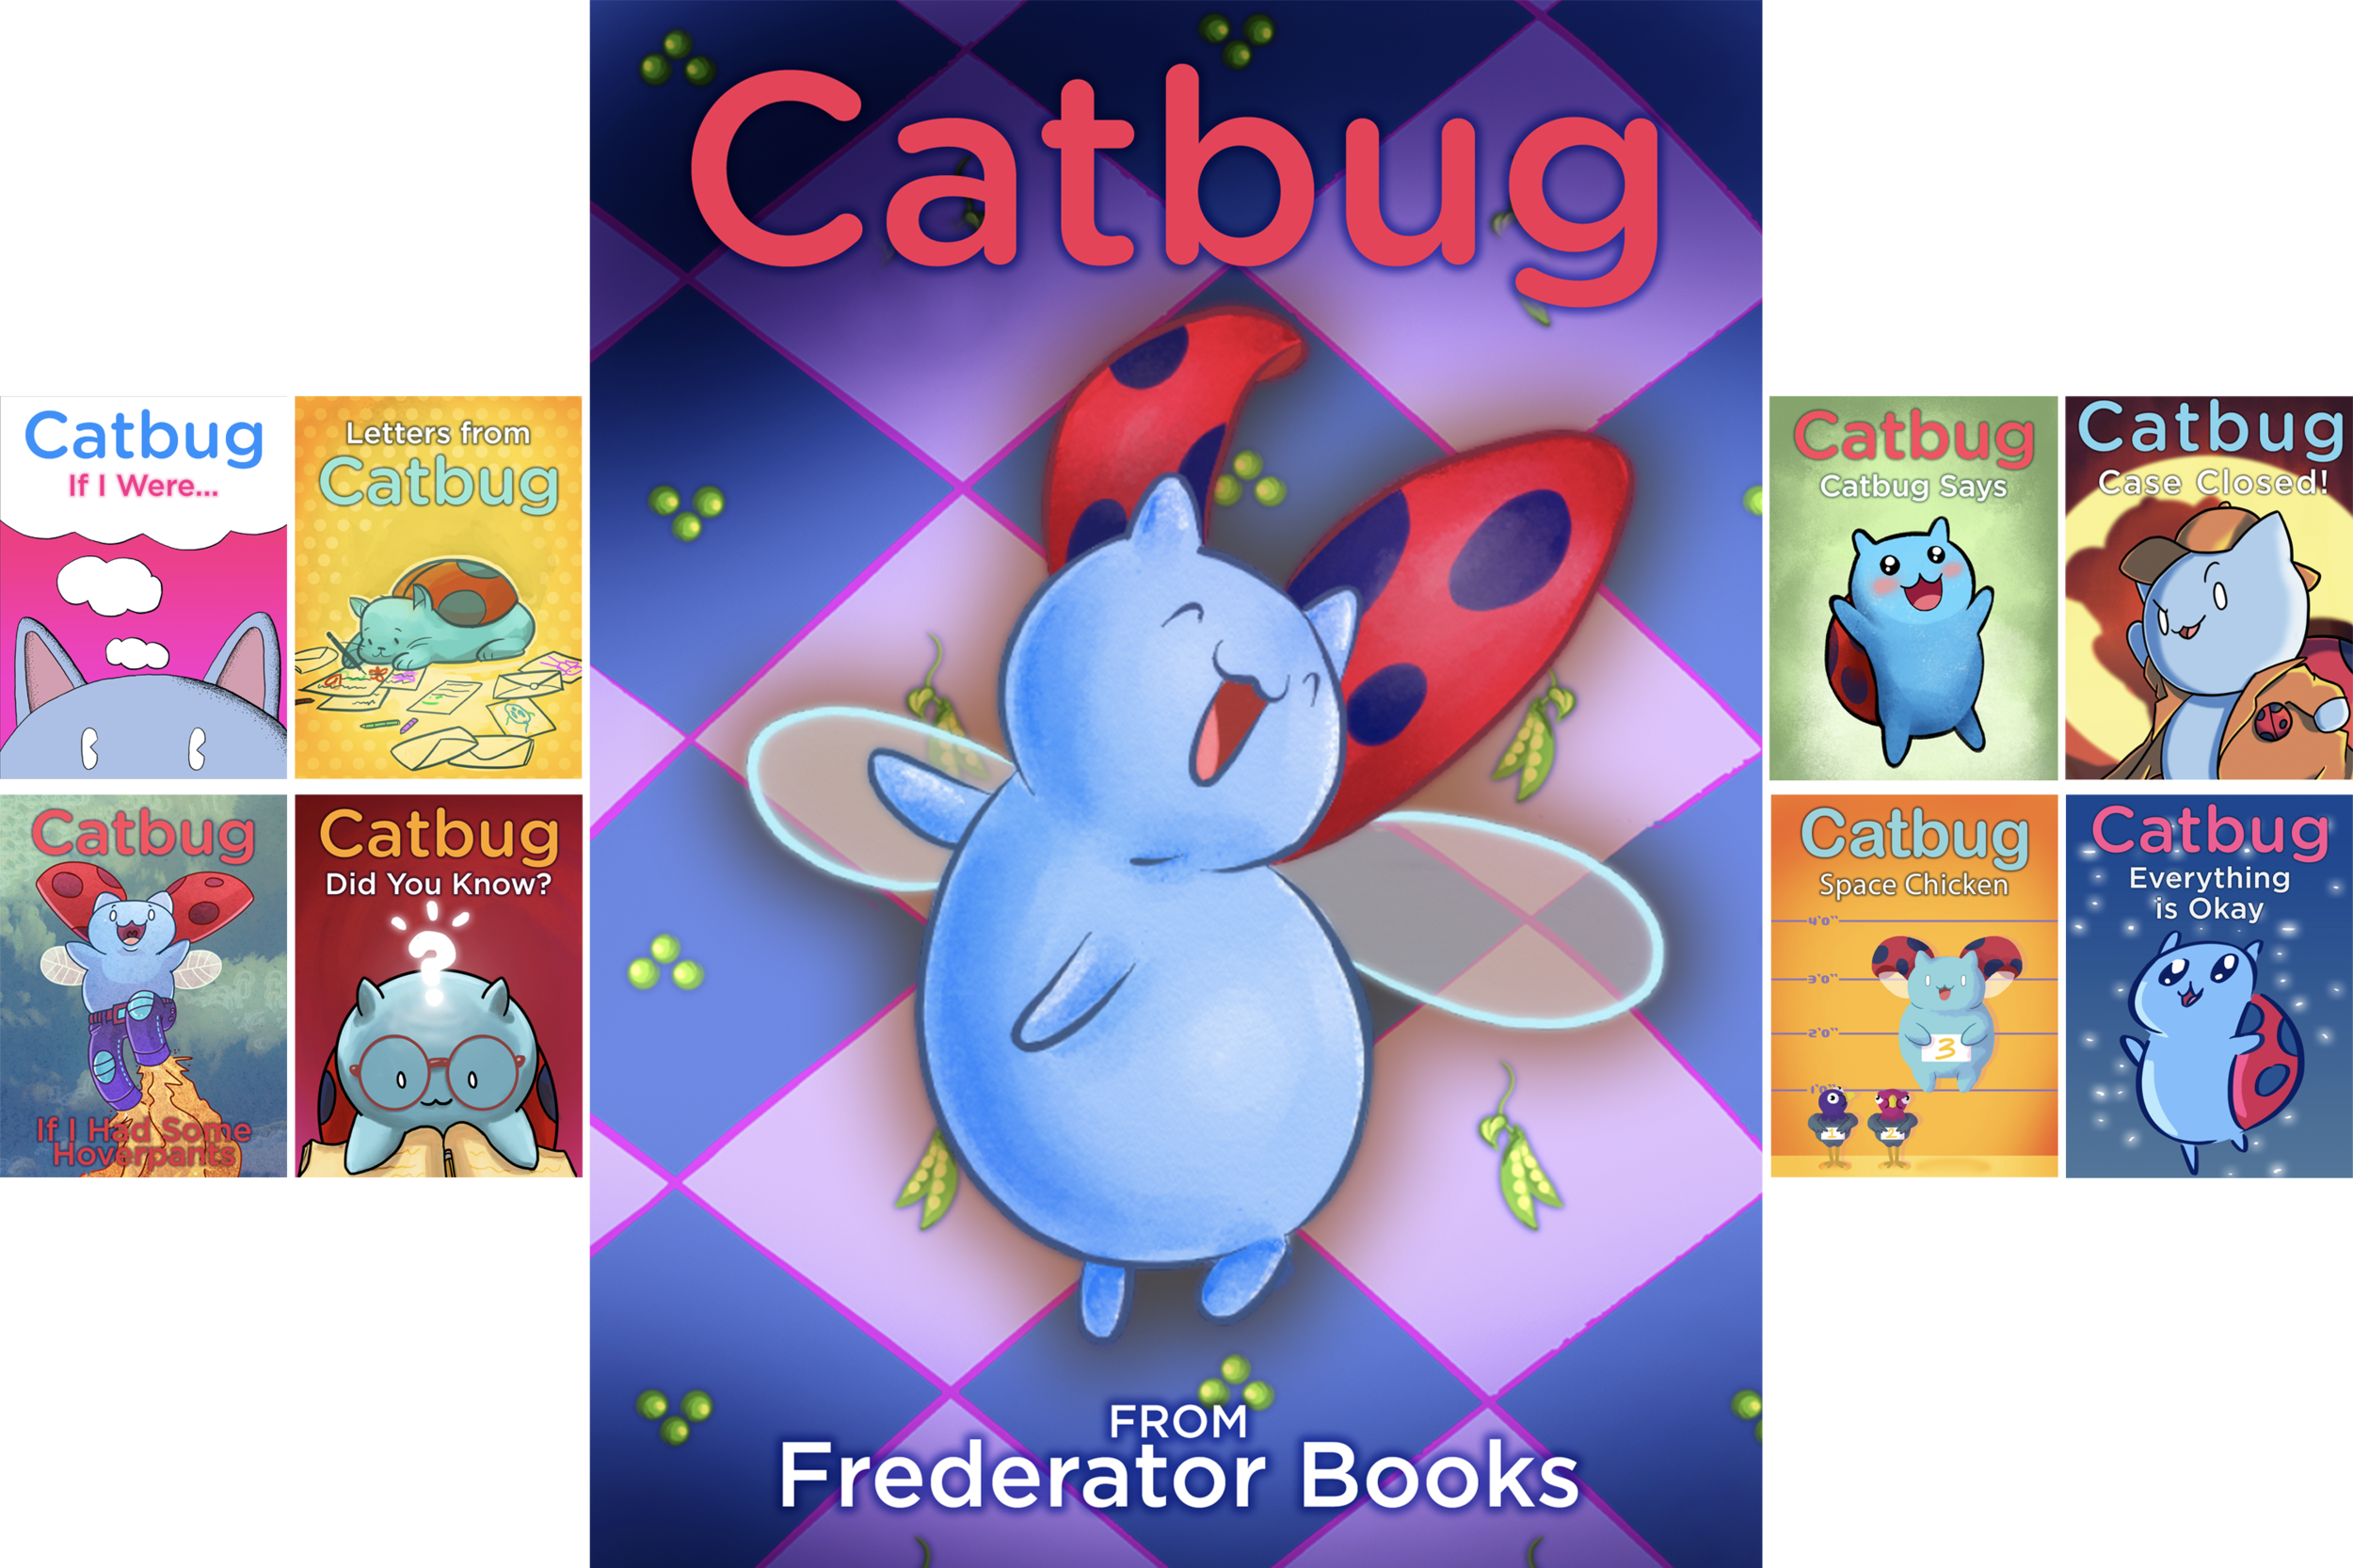 Meet  Catbug ! He likes making friends, playing tag, and eating peanut butter squares (but not until after they cool down!) Find out what millions of people who watch  Catbug in  Bravest Warriors   are talking about, and the hilarious one liners that you can't stop quoting.